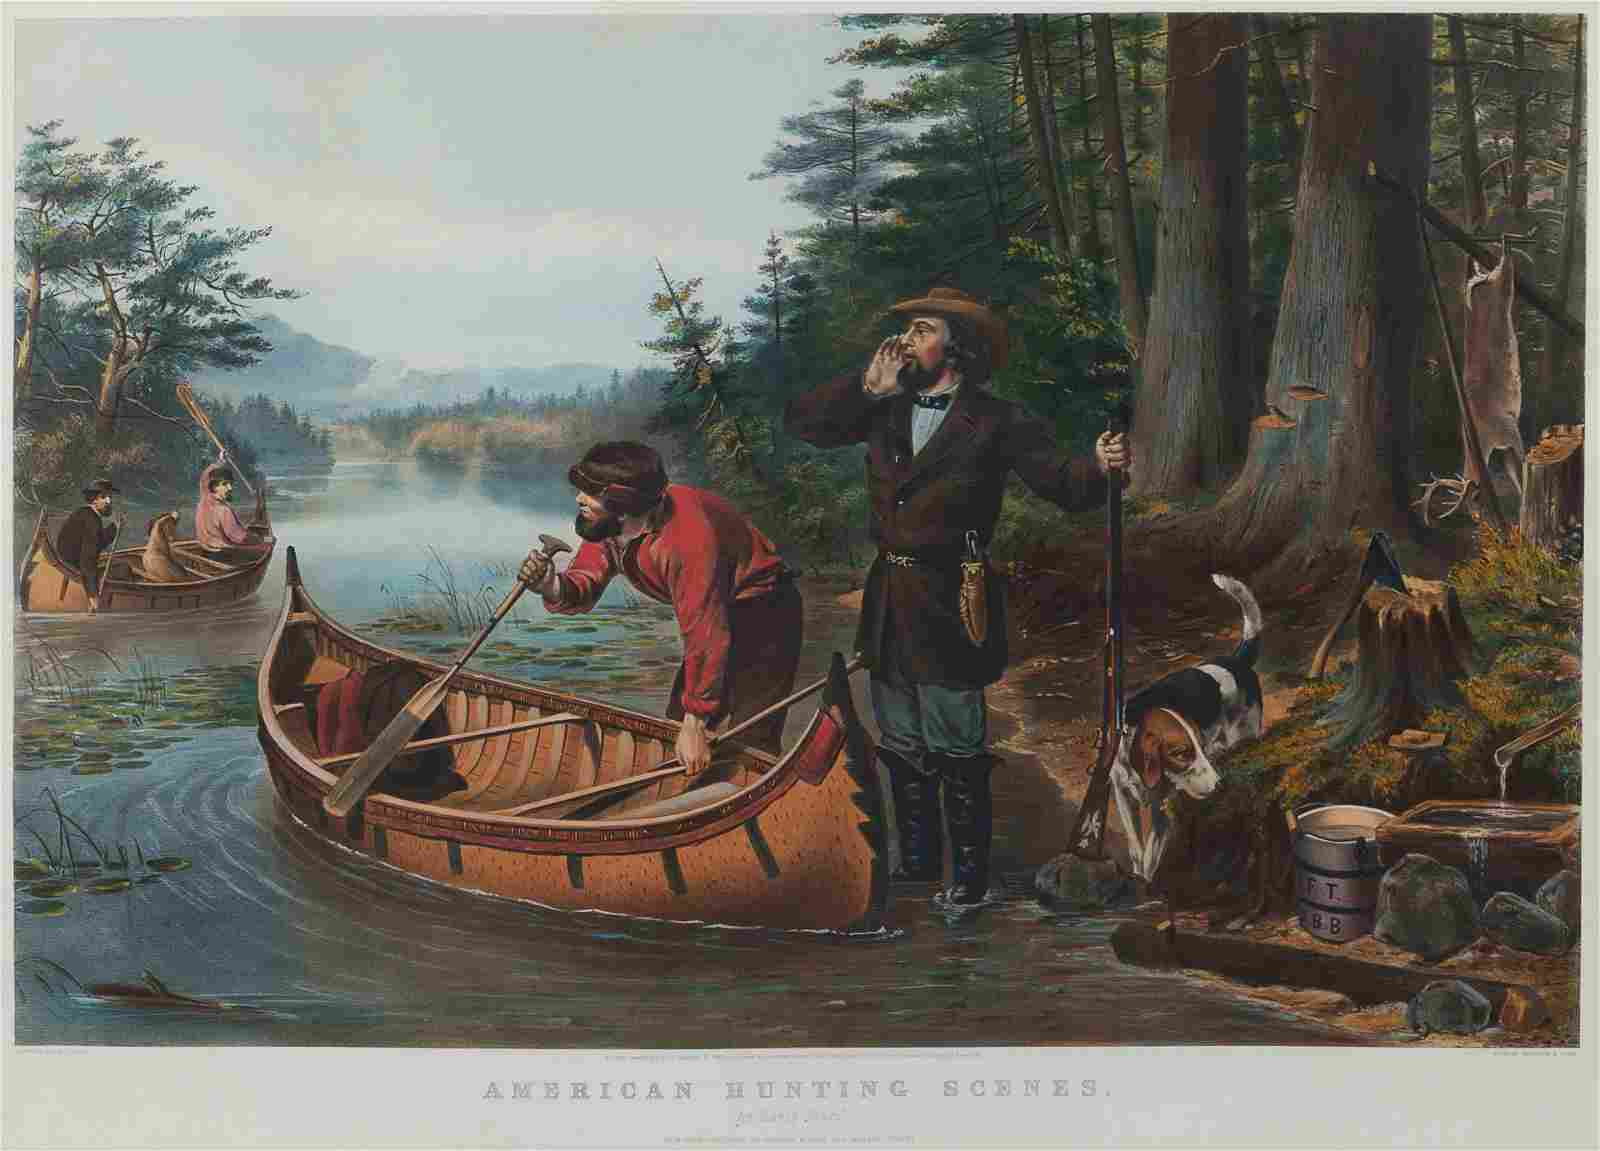 CURRIER and IVES, publishers -- after Arthur F. Tait